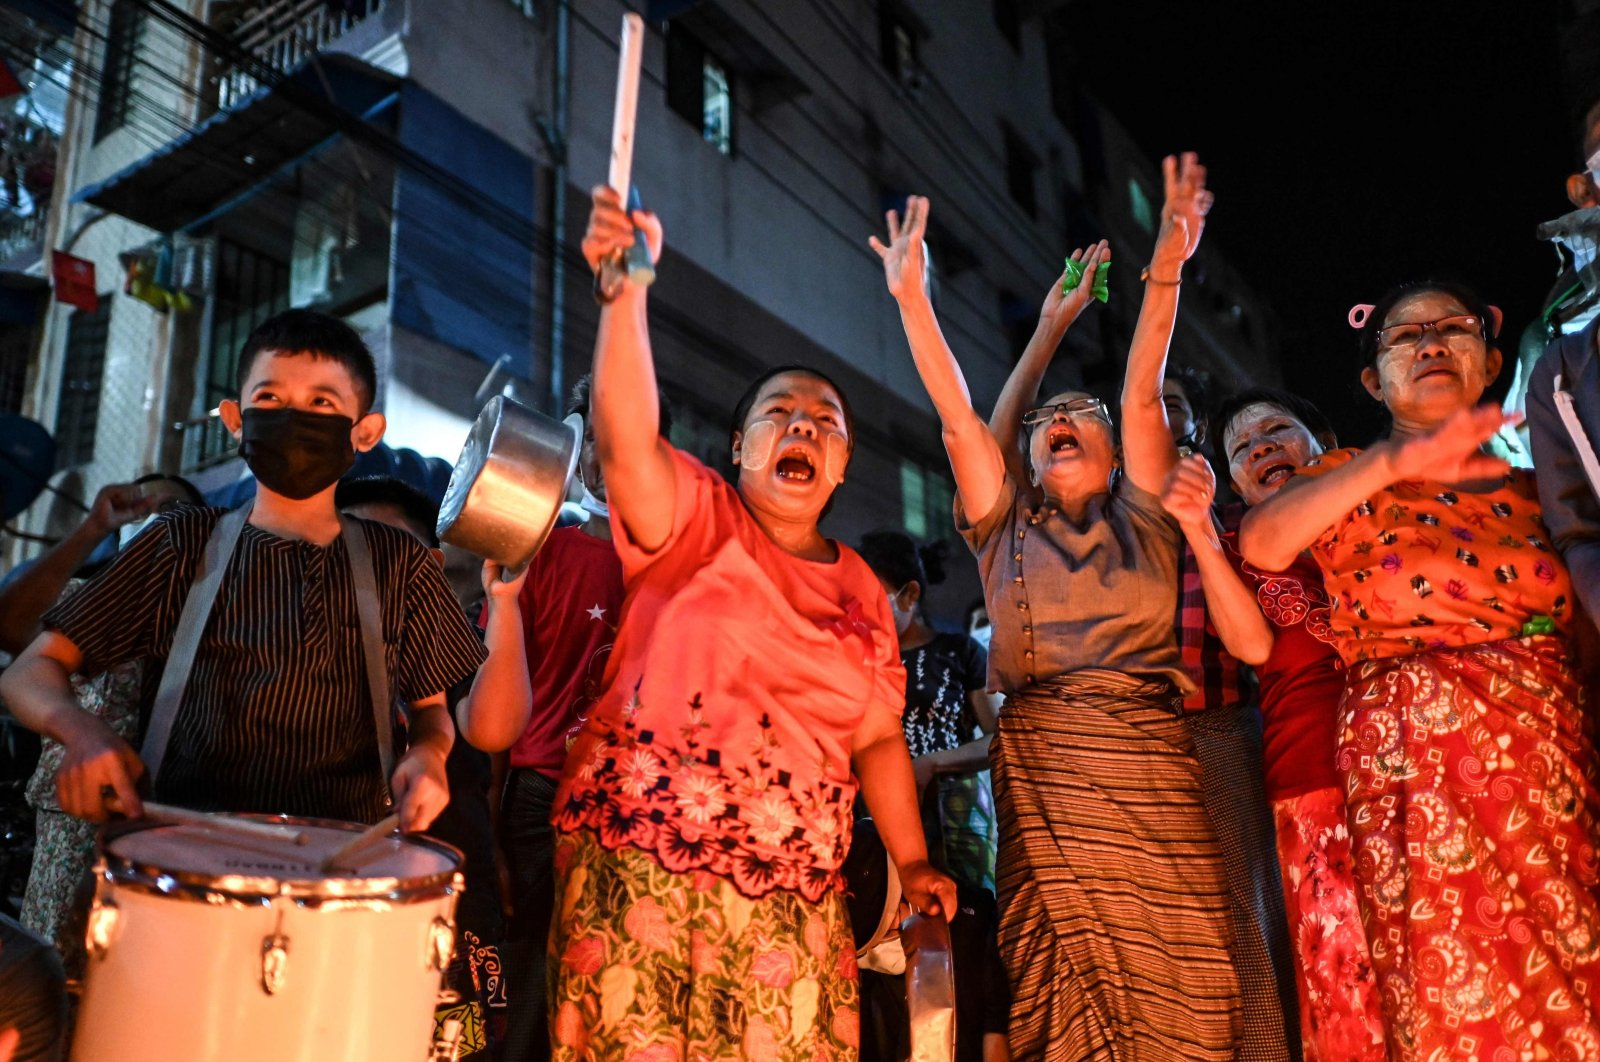 People take part in a noise campaign on the street after calls for protest against the military coup emerged on social media, in Yangon, Myanmar, Feb. 5, 2021. (AFP Photo)